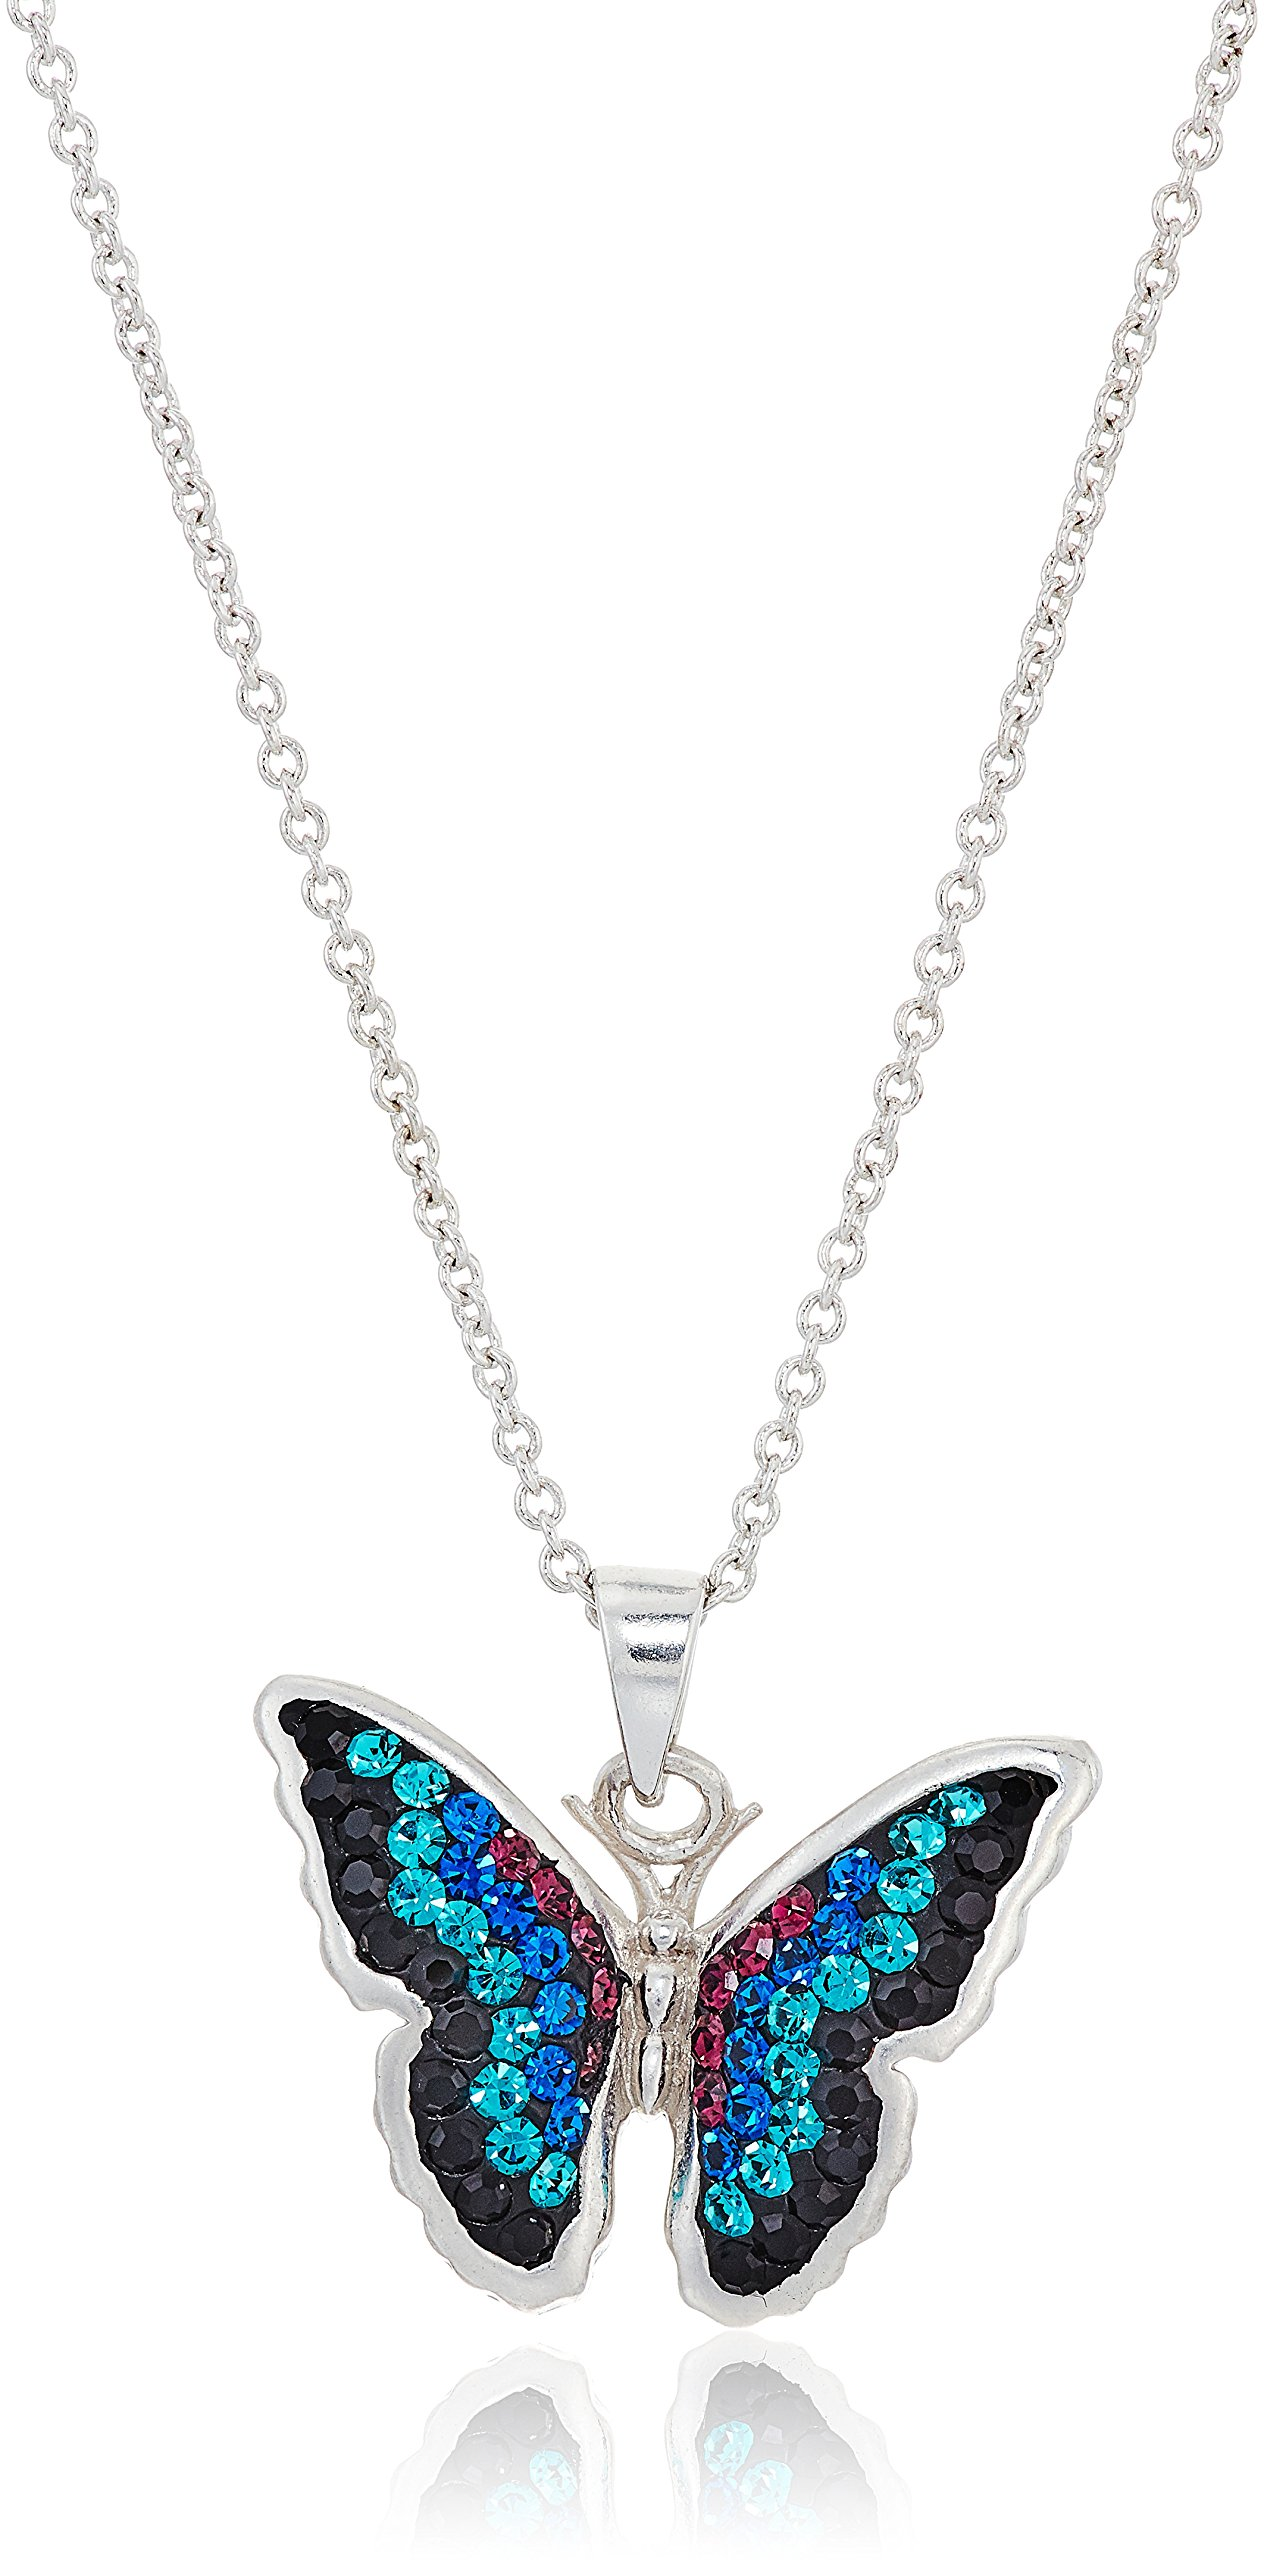 Silver Plated Crystal Blue and Teal Ombre Butterfly Pendant Necklace, 18''